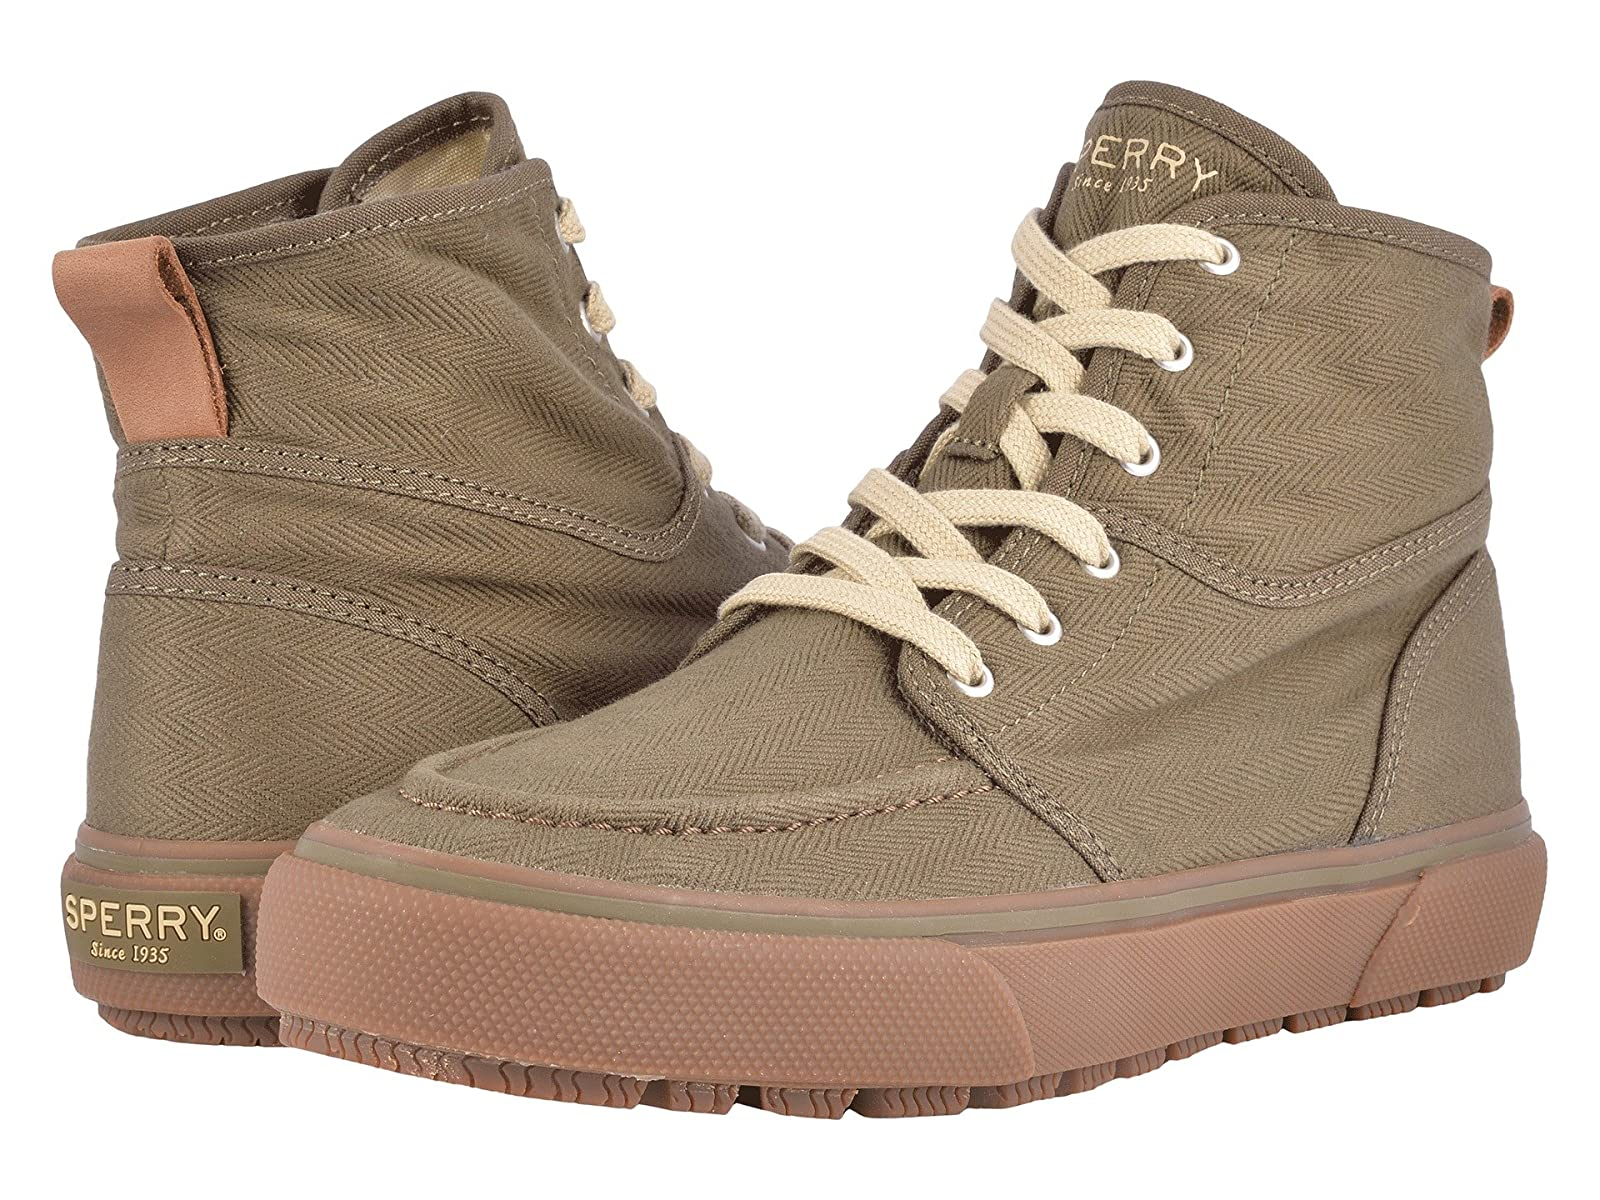 Sperry Bahama Lug Naval BootCheap and distinctive eye-catching shoes